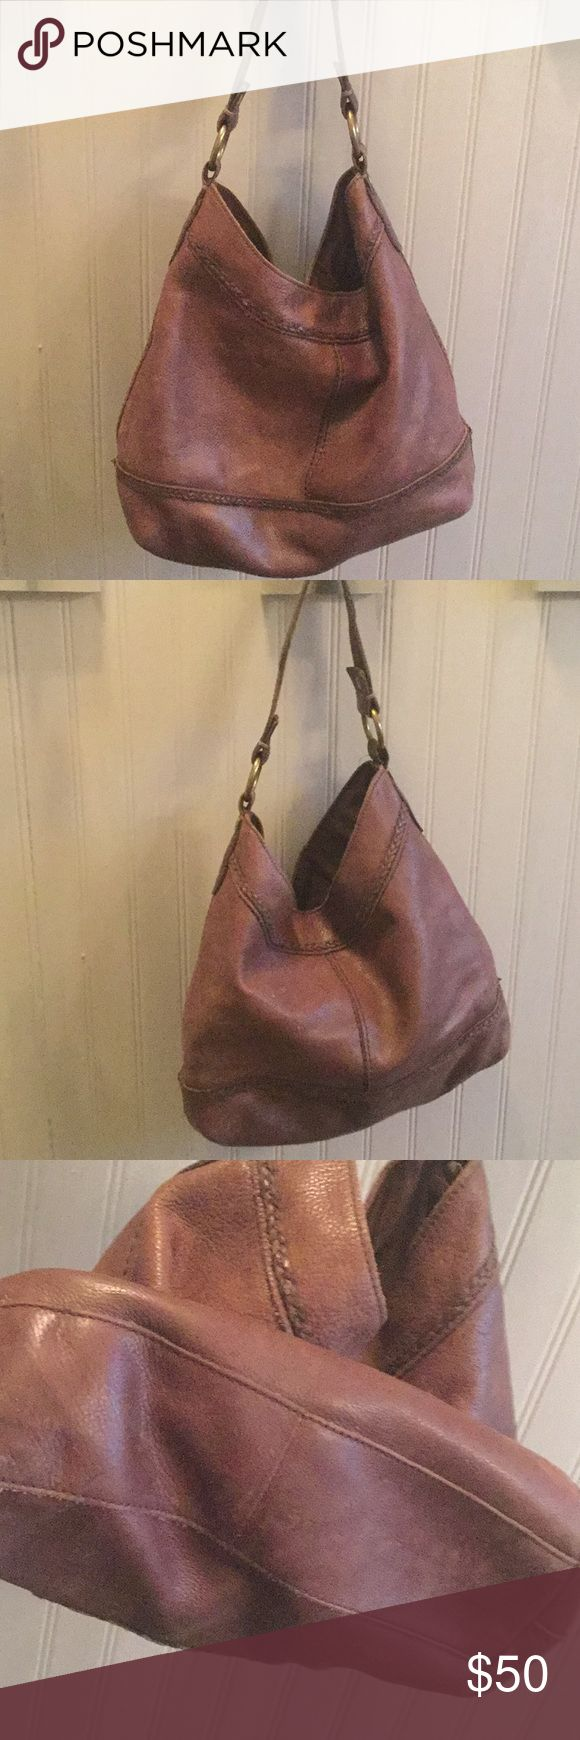 Large leather slouch bag Lucky brand large leather slouch bag with slightly distressed leather. Inside are 2 side pockets and one larger zip pocket. I absolutely love this bag!! Lucky Brand Bags Shoulder Bags